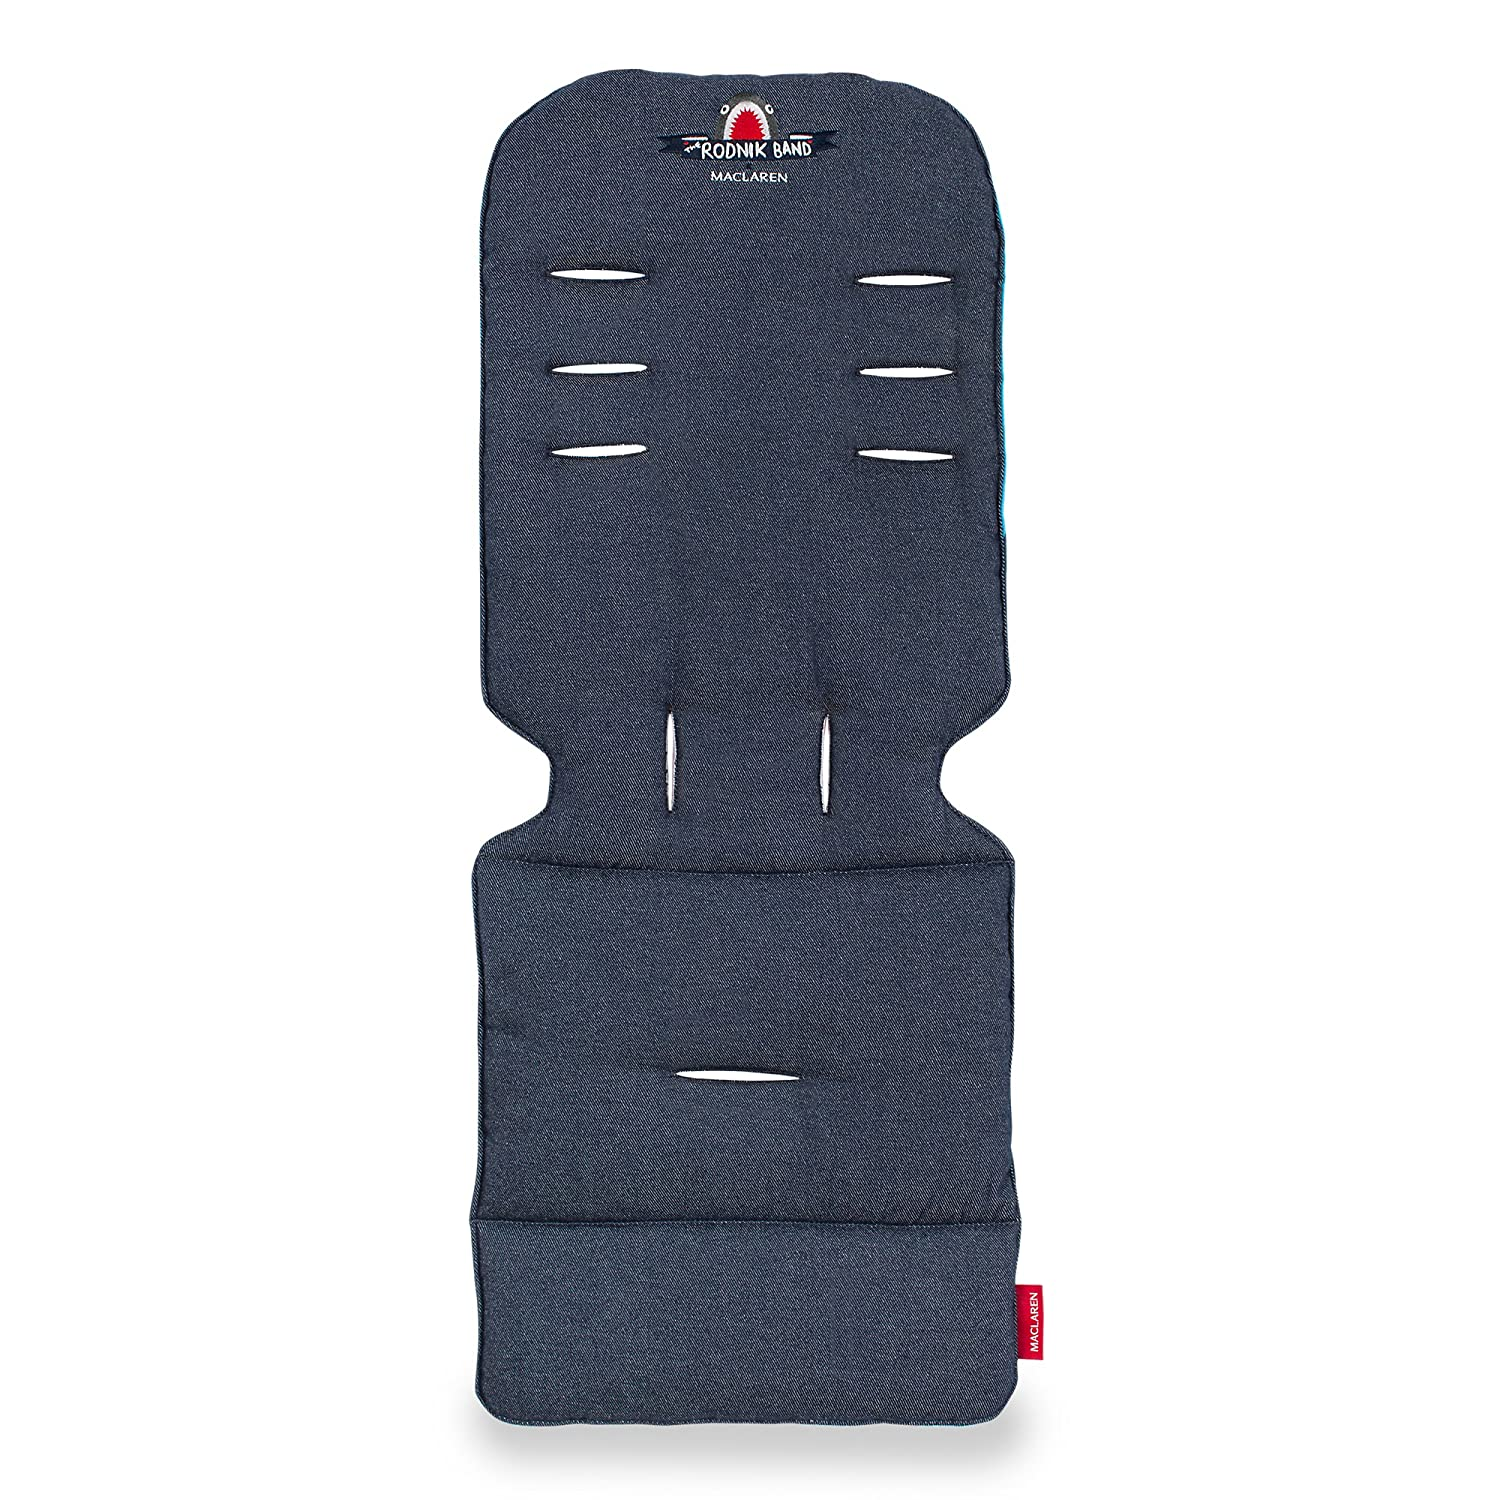 Machine Washable Maclaren Universal Seat Liner- Perfect Stroller Accessory to add Style and Comfort Two-Sided Attaches to Harness Straps of All Maclarens and All Umbrella-fold Stroller Brands